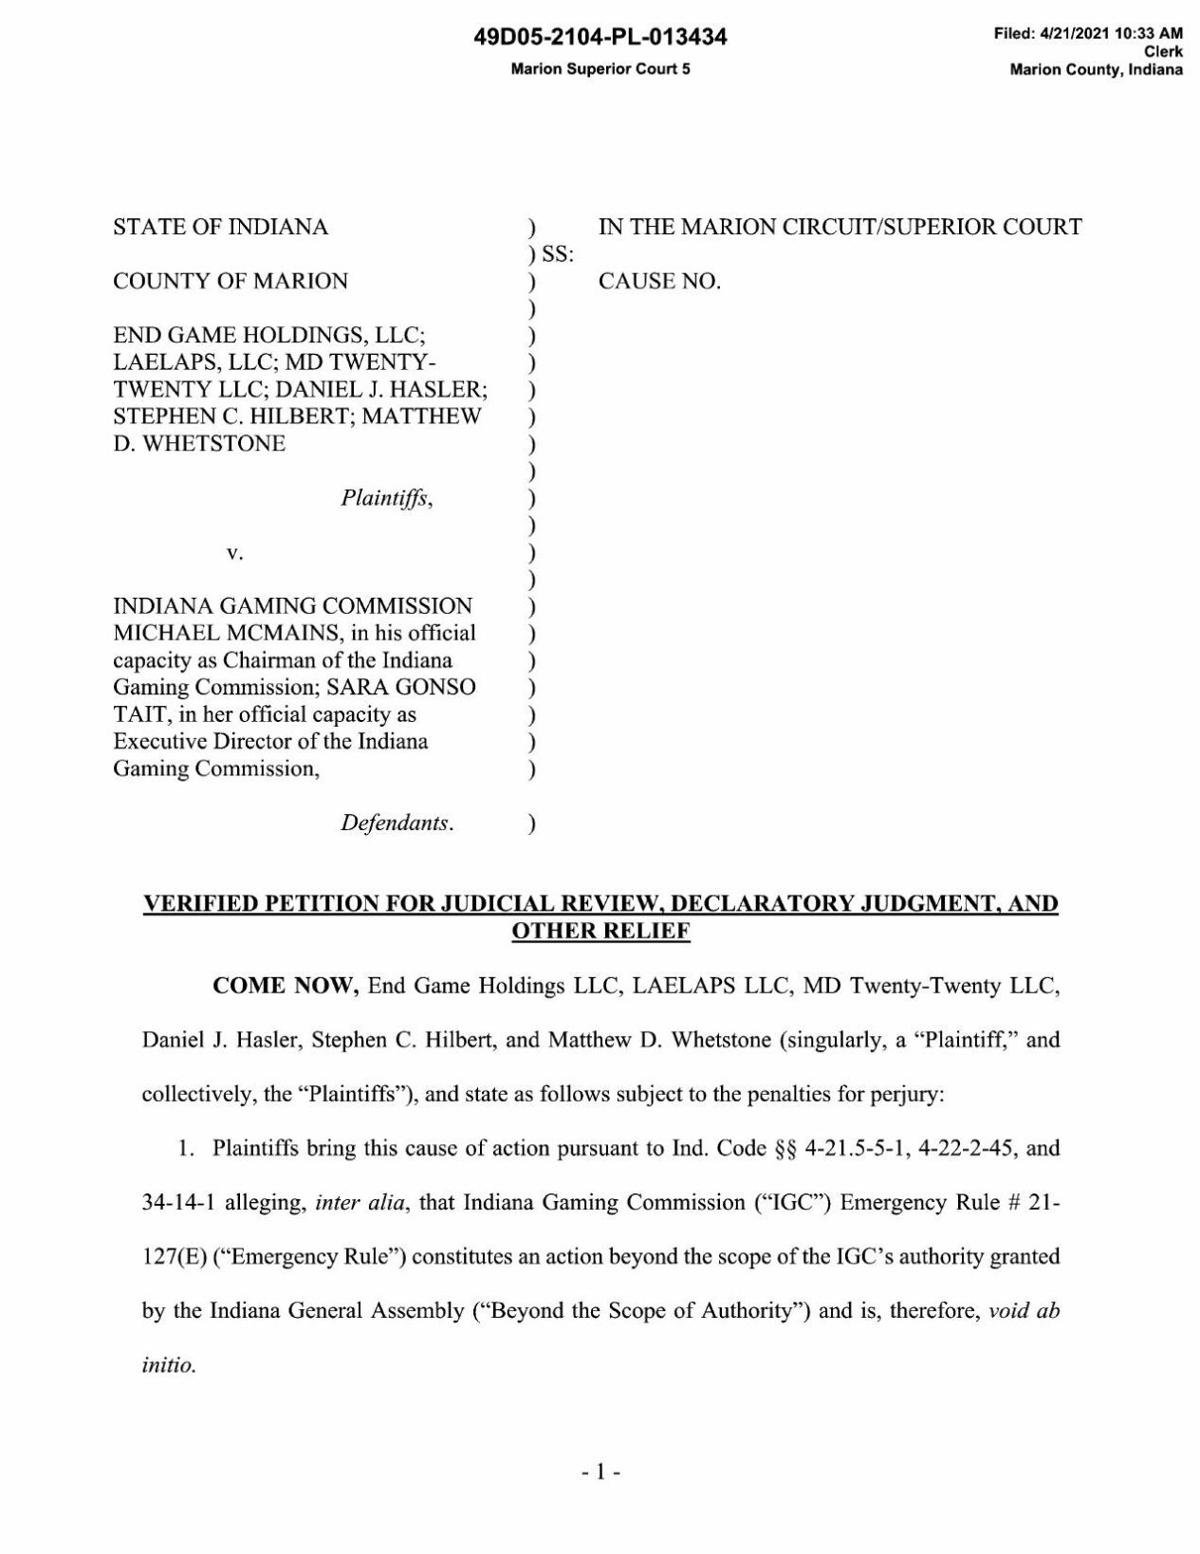 Petition in End Game Holdings, et. al. v. Indiana Gaming Commission